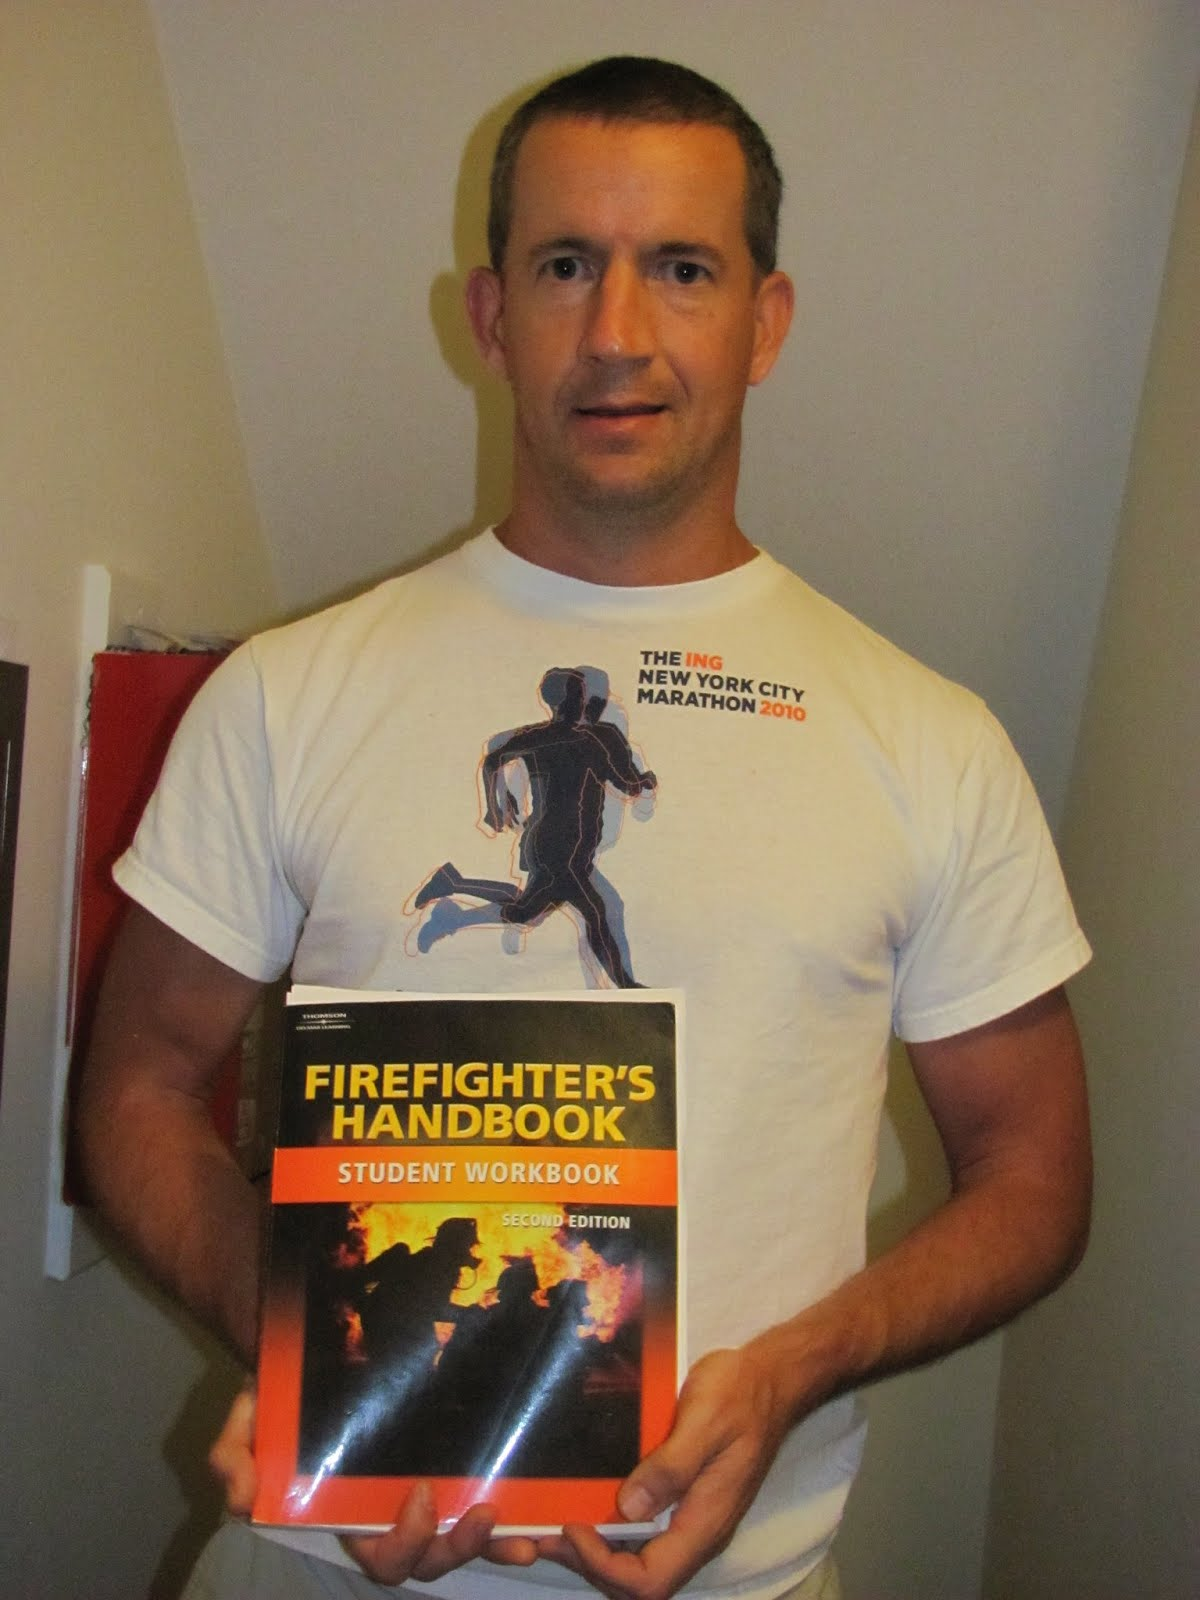 As a probationary in 2011 as had to learn The Firefighter's Handbook